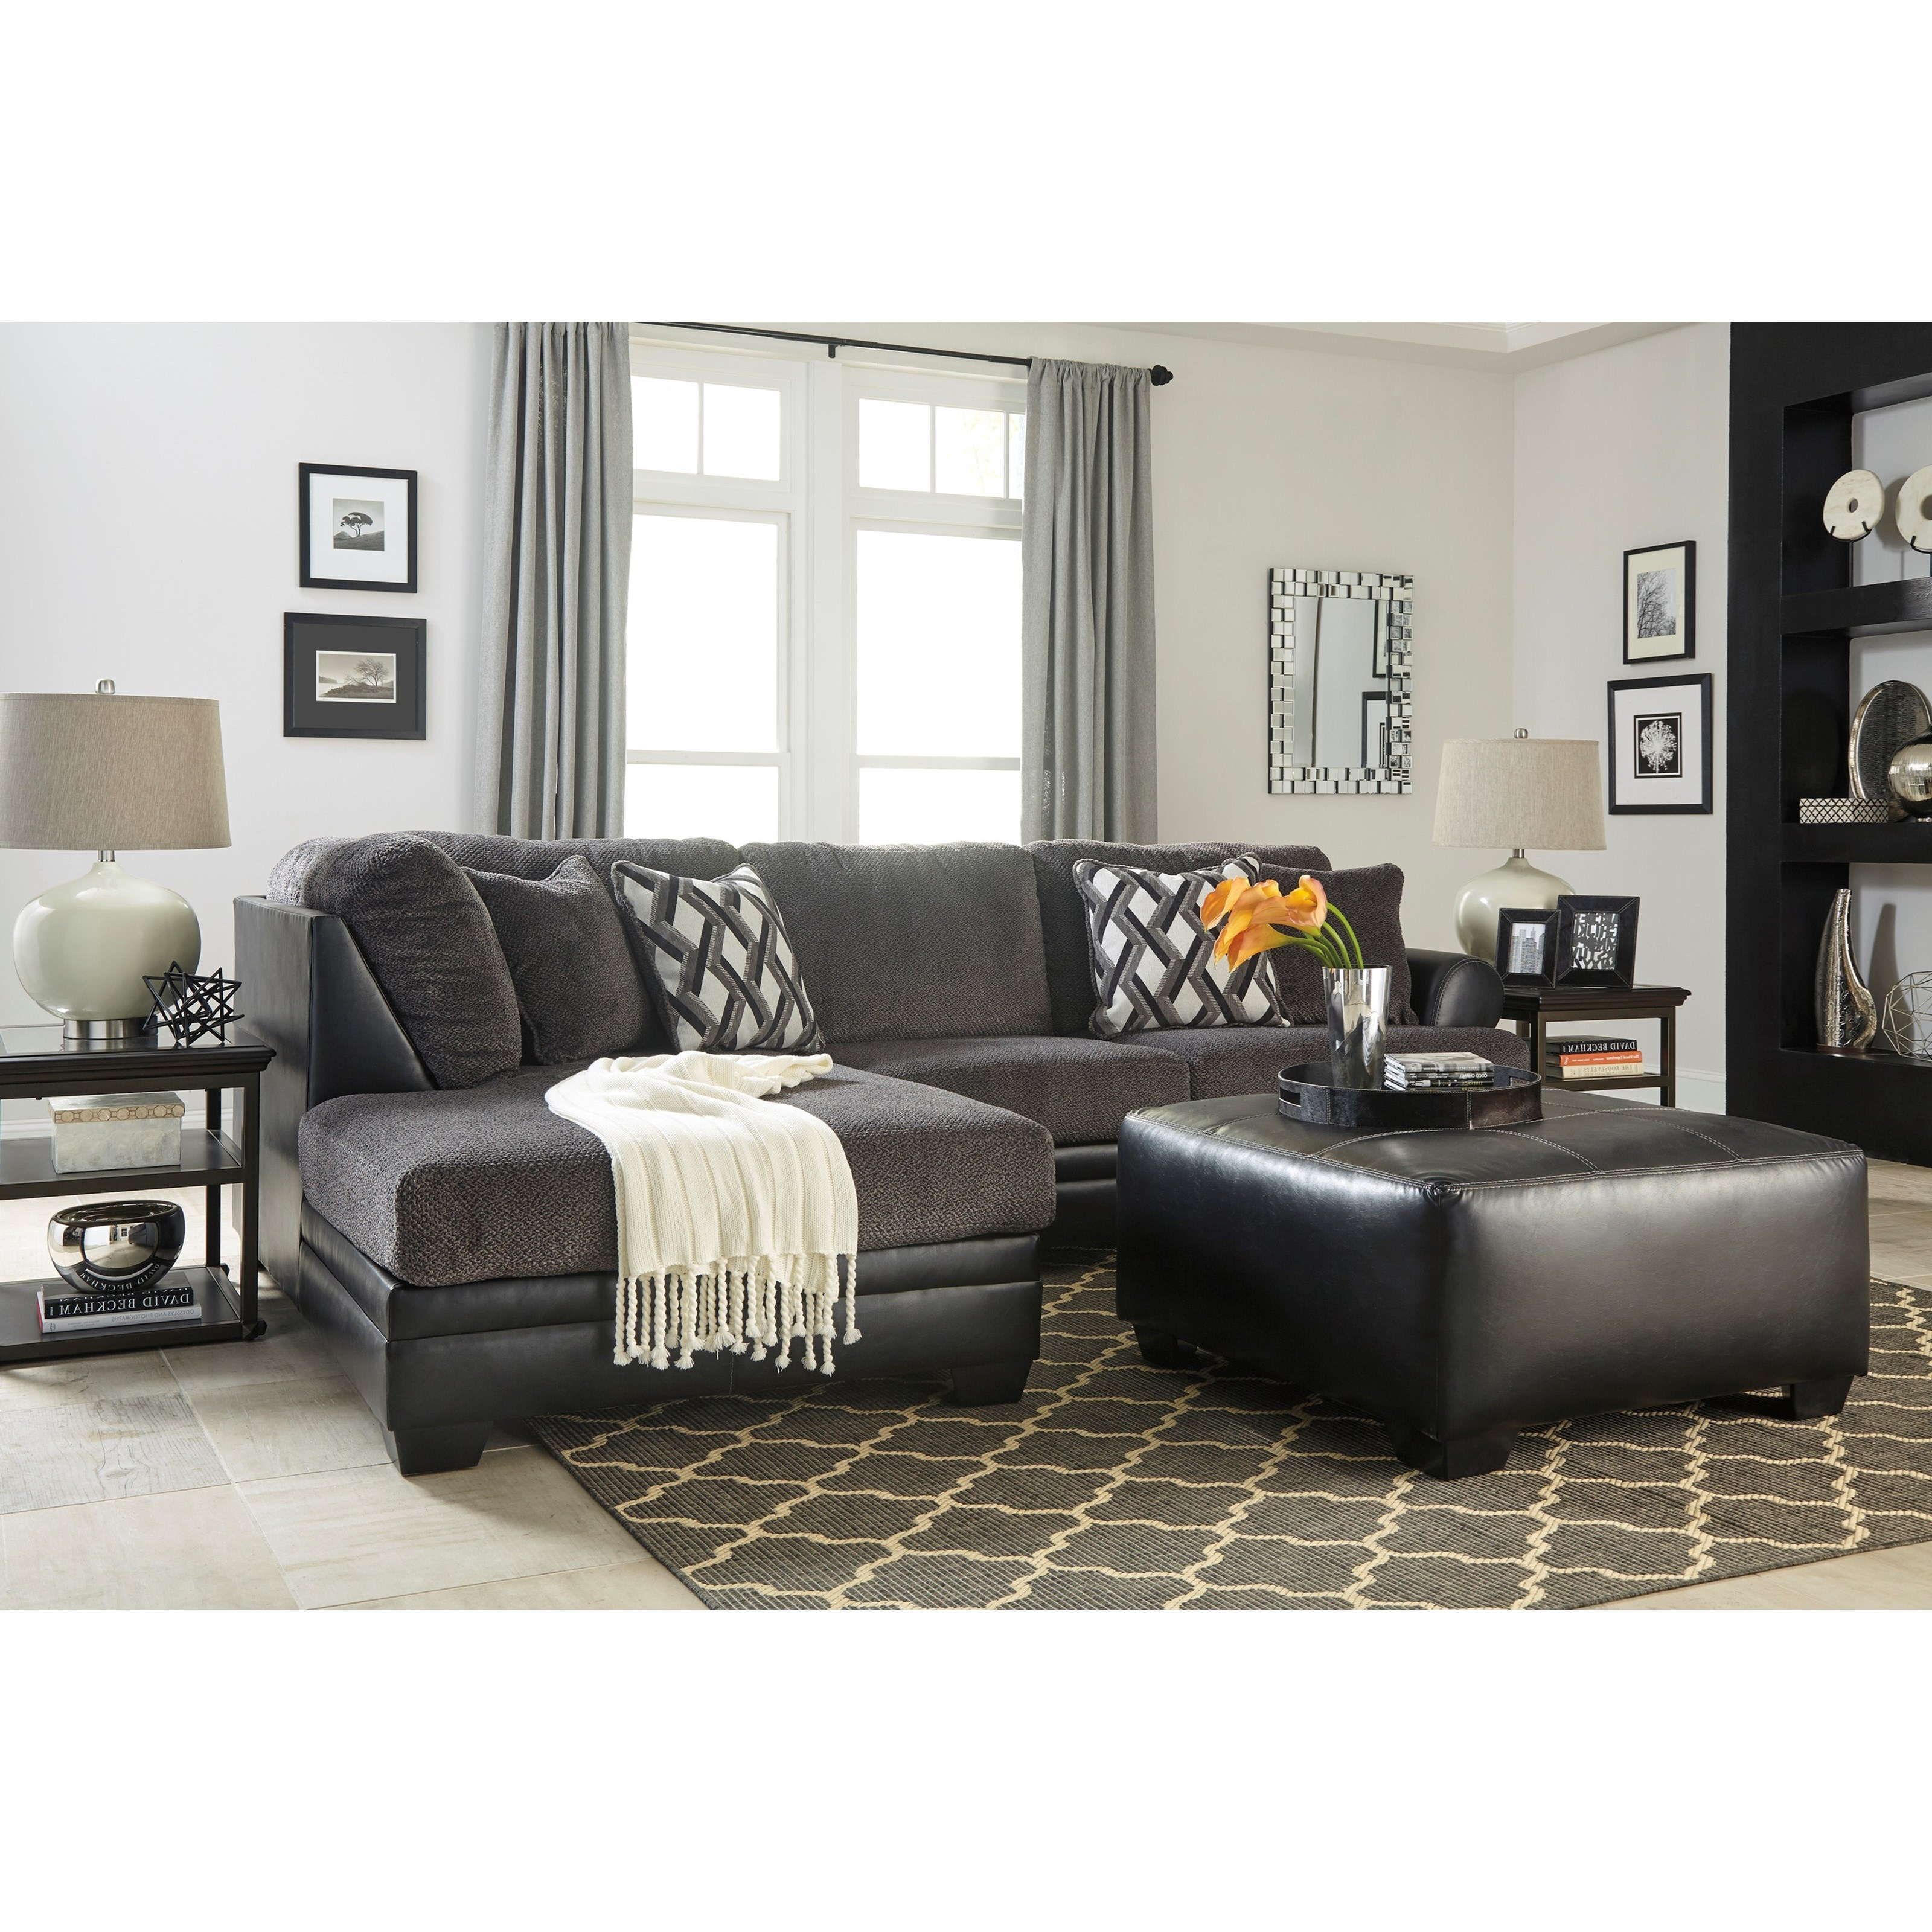 Benchcraft Kumasi Stationary Living Room Group - Item Number: 32202 Living Room Group 1